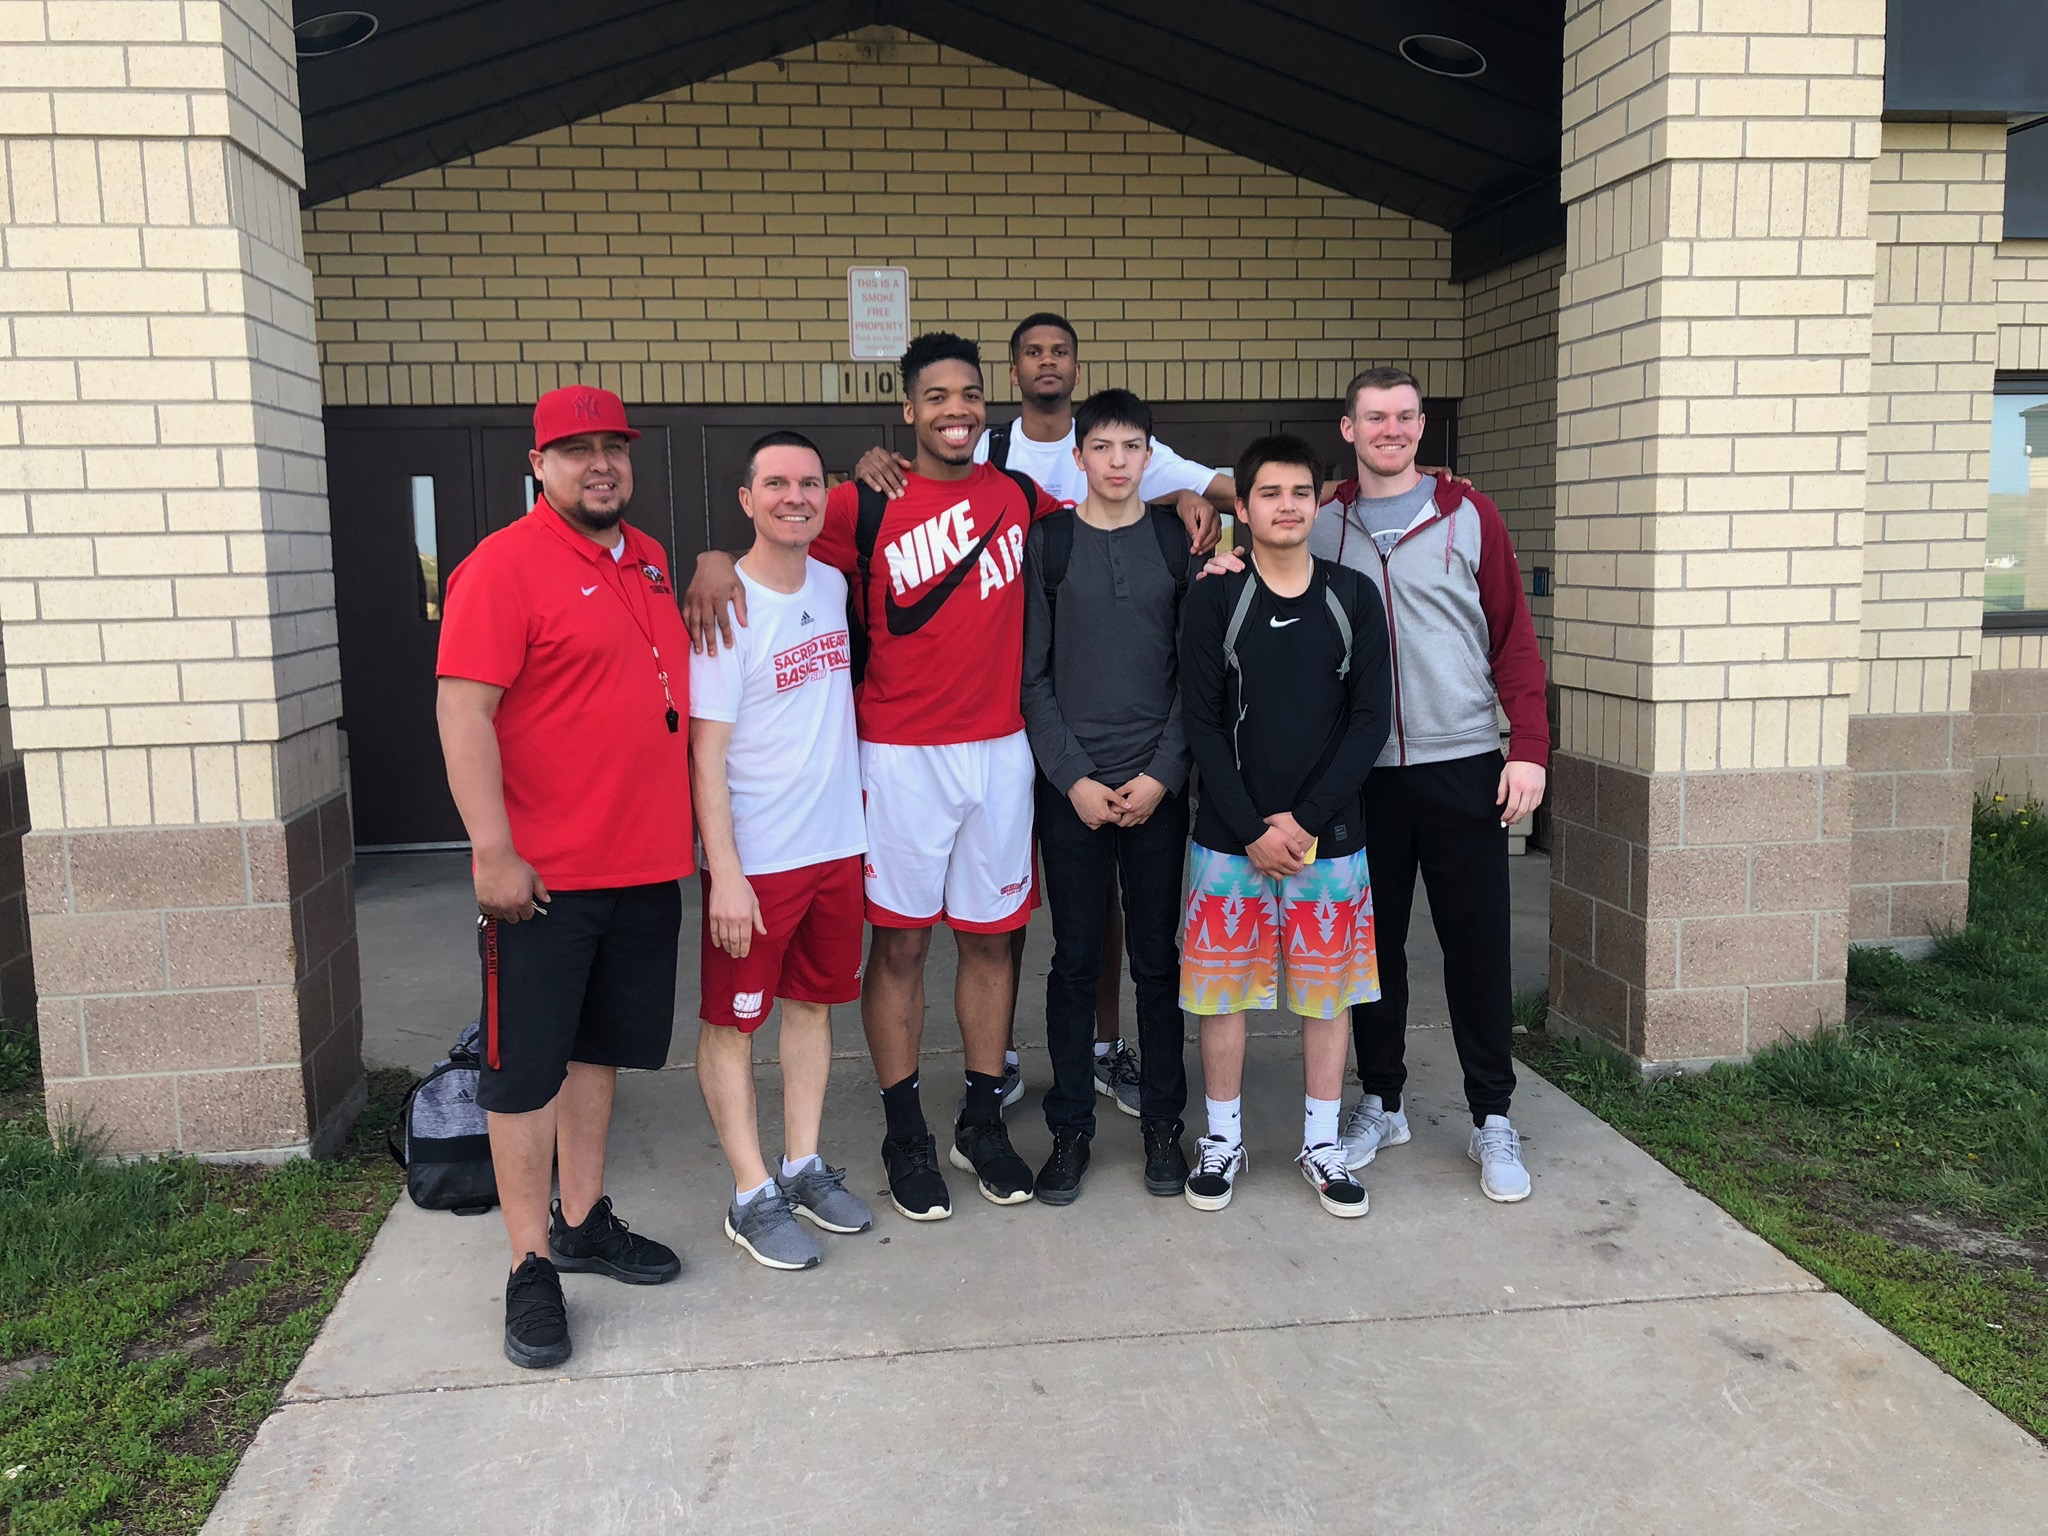 Volunteers lend their time and talents to provide excellent programming for the kids,  including Sacred Heart University's Division I Men's Basketball team who lead a basketball clinic!